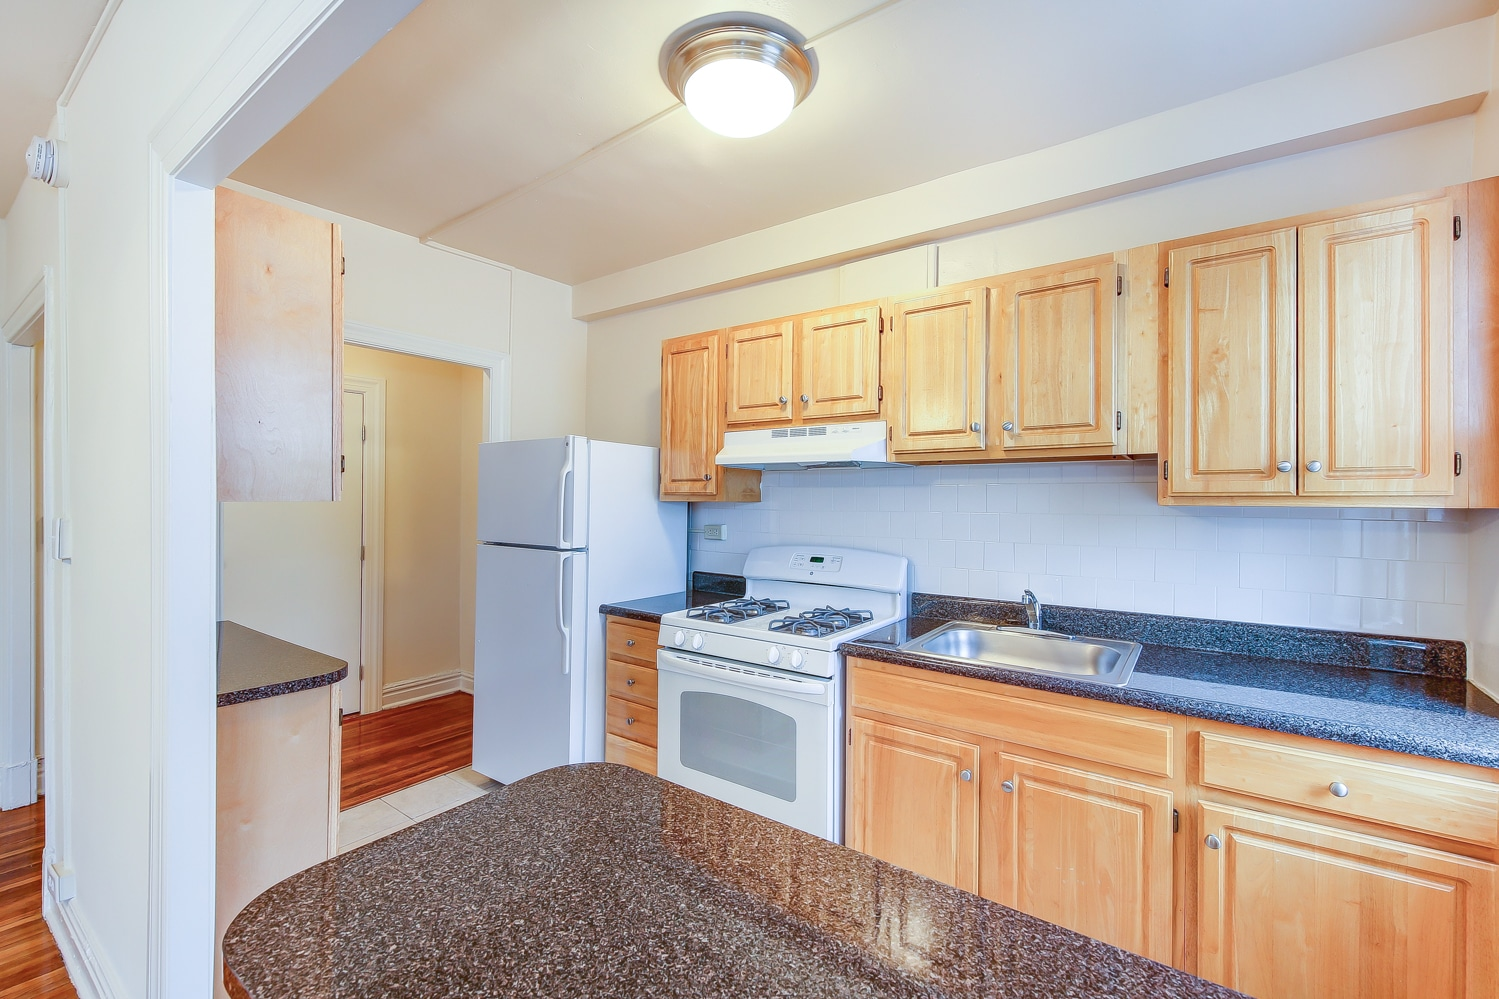 Hampton-Courts-Kitchen-Cabinets-Appliances-Washington-DC-Apartment ...